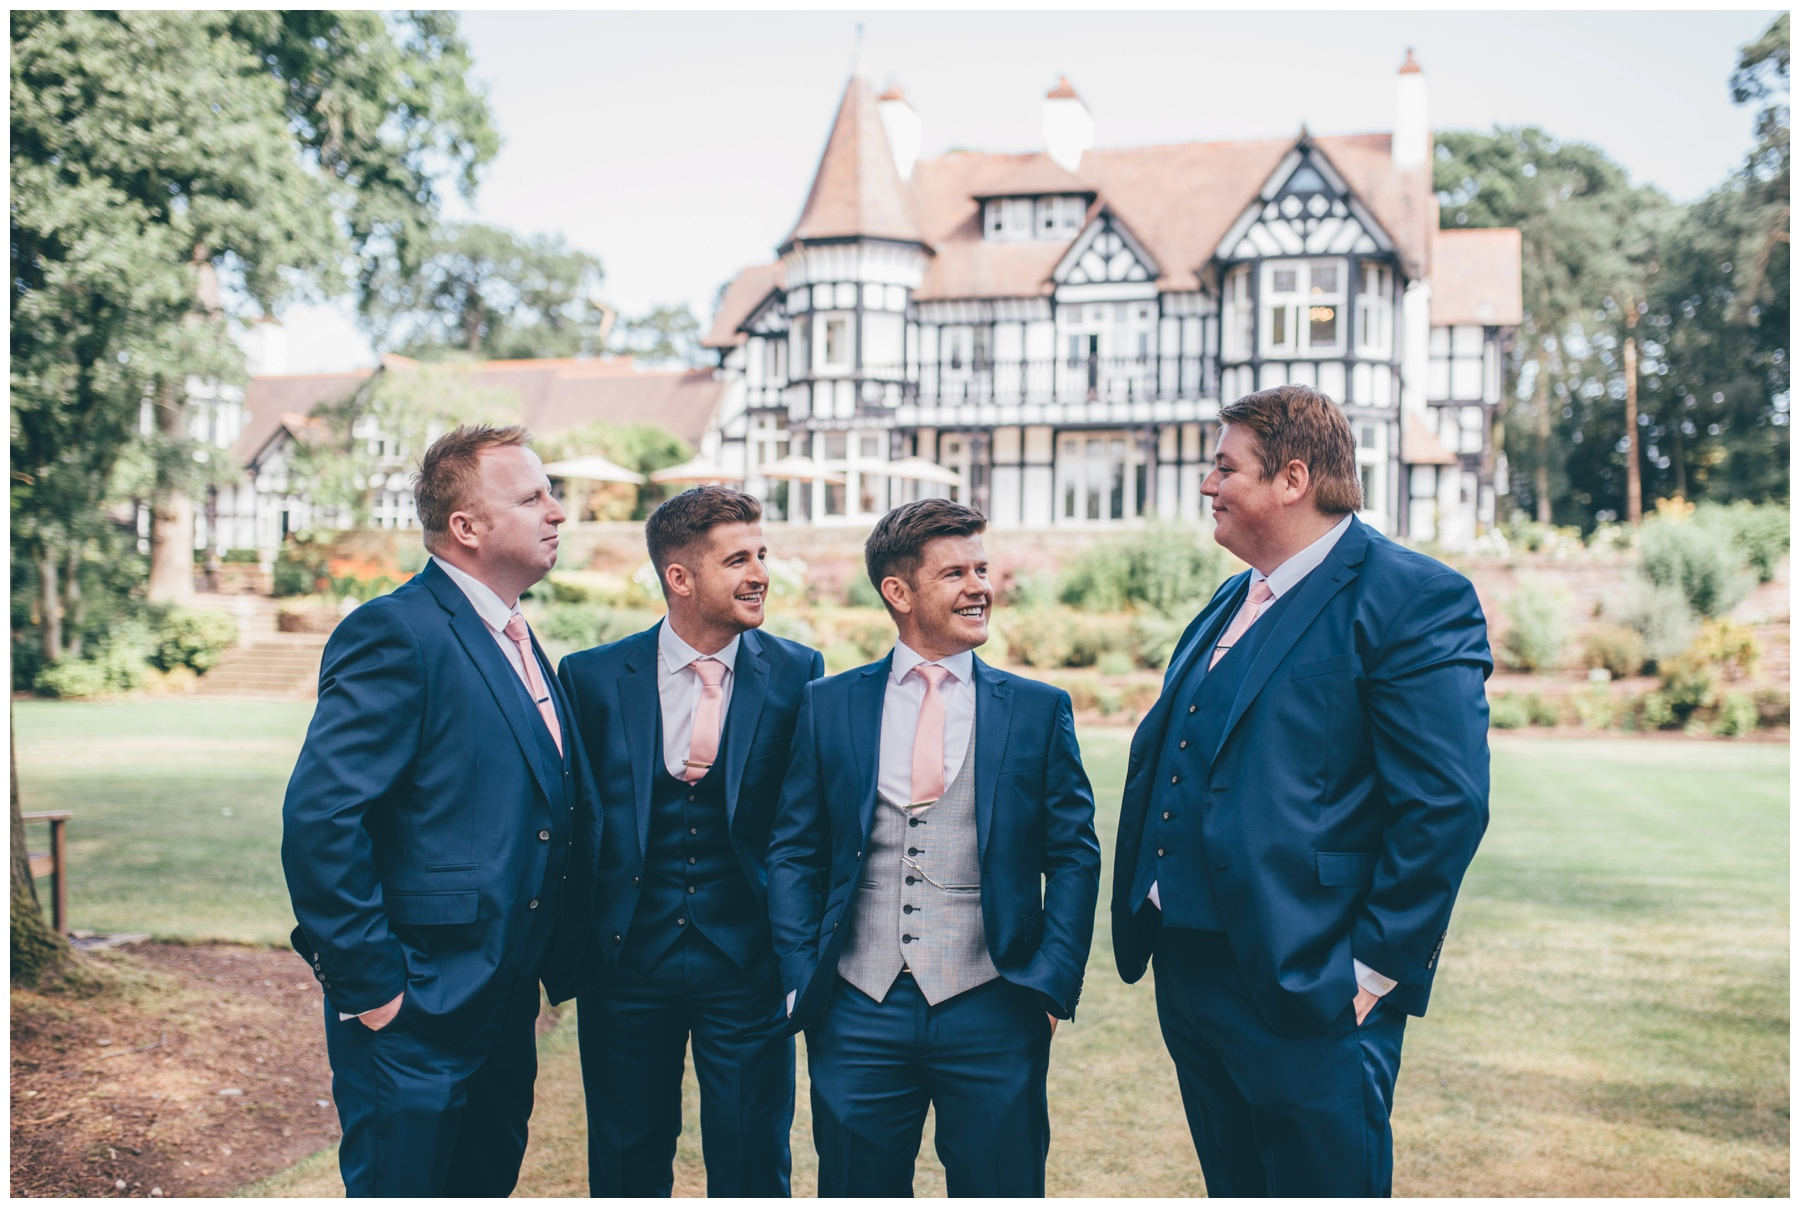 The groom and his groomsmen before the wedding at Tilstone House in Cheshire.